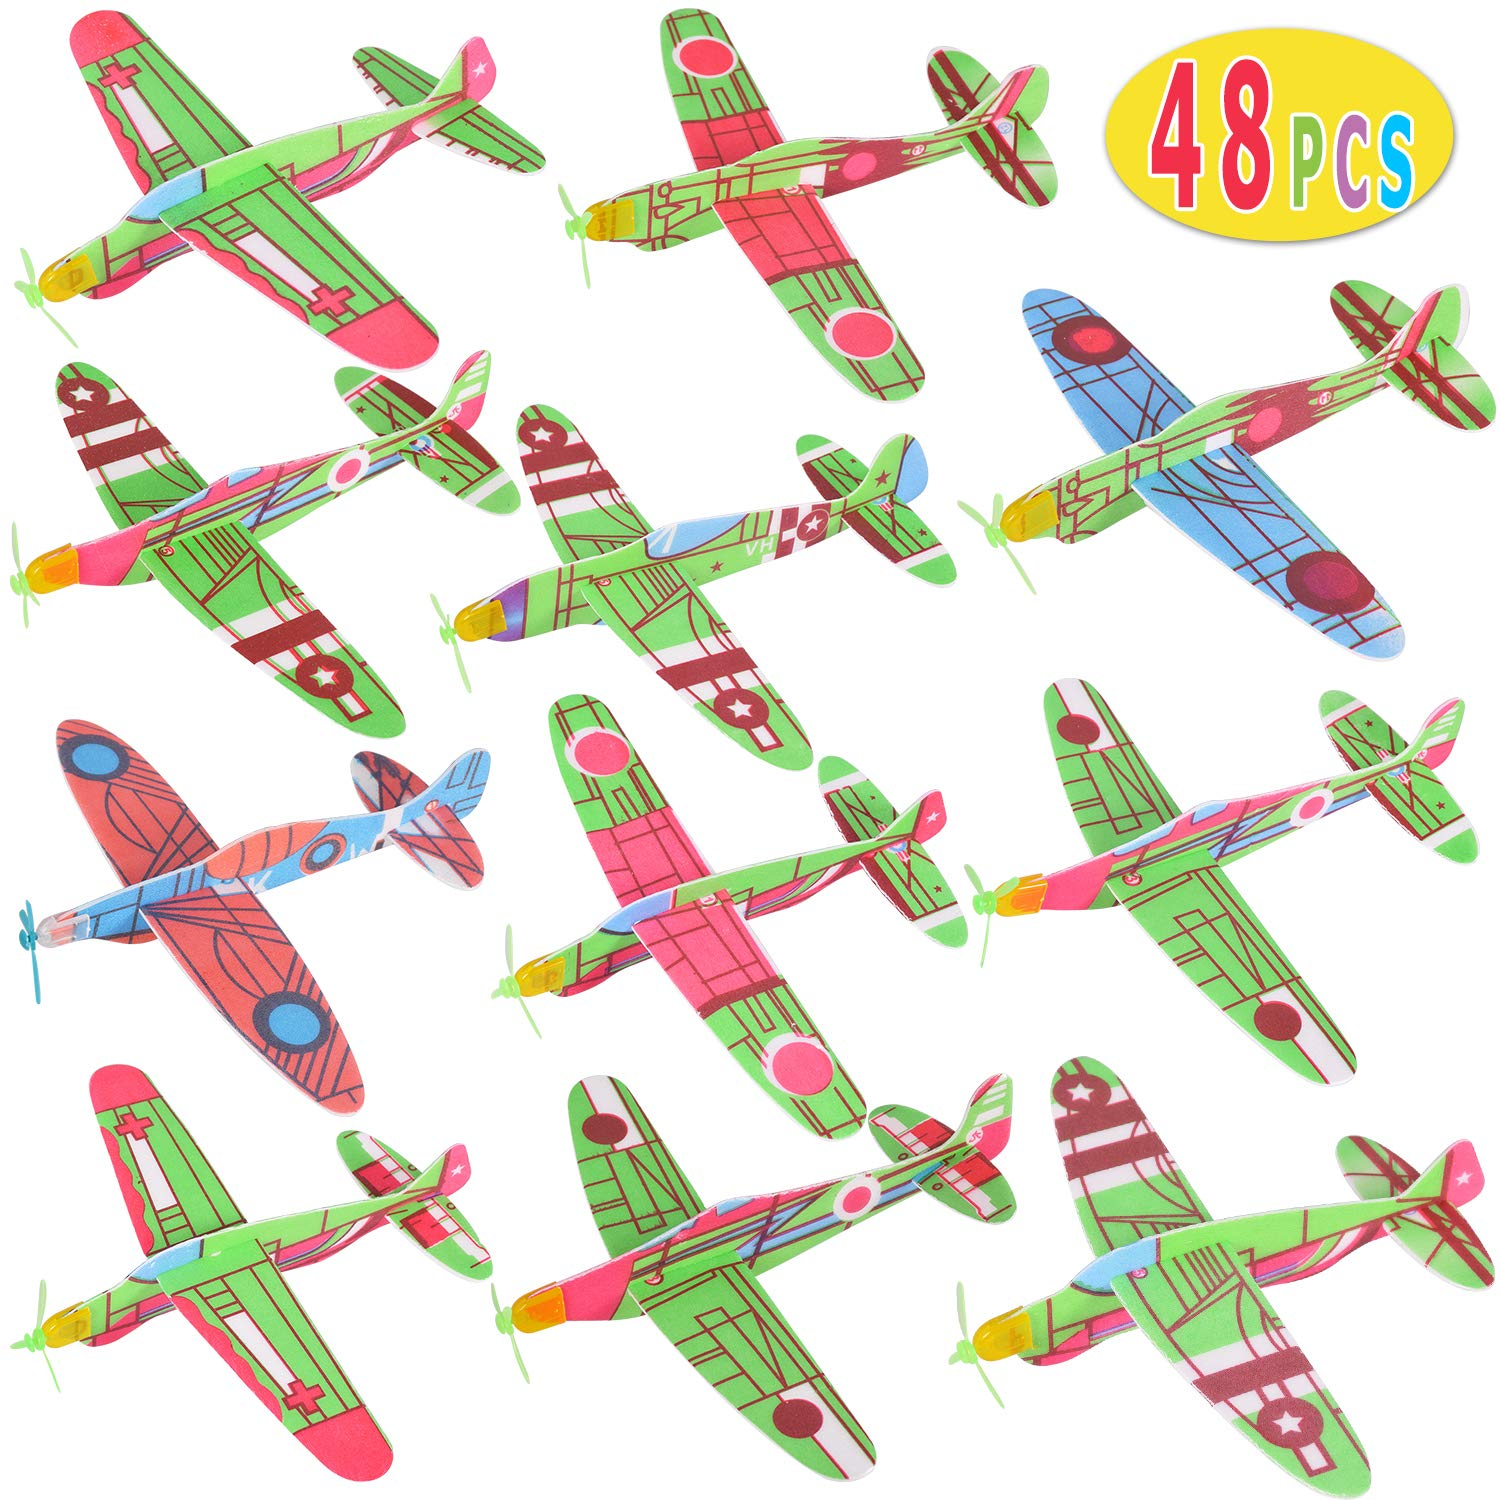 Max Fun Random 48 Pcs 6.9'' Flying Glider Planes for Kids Birthday Party Favors Carnival Prizes School Classroom Rewards